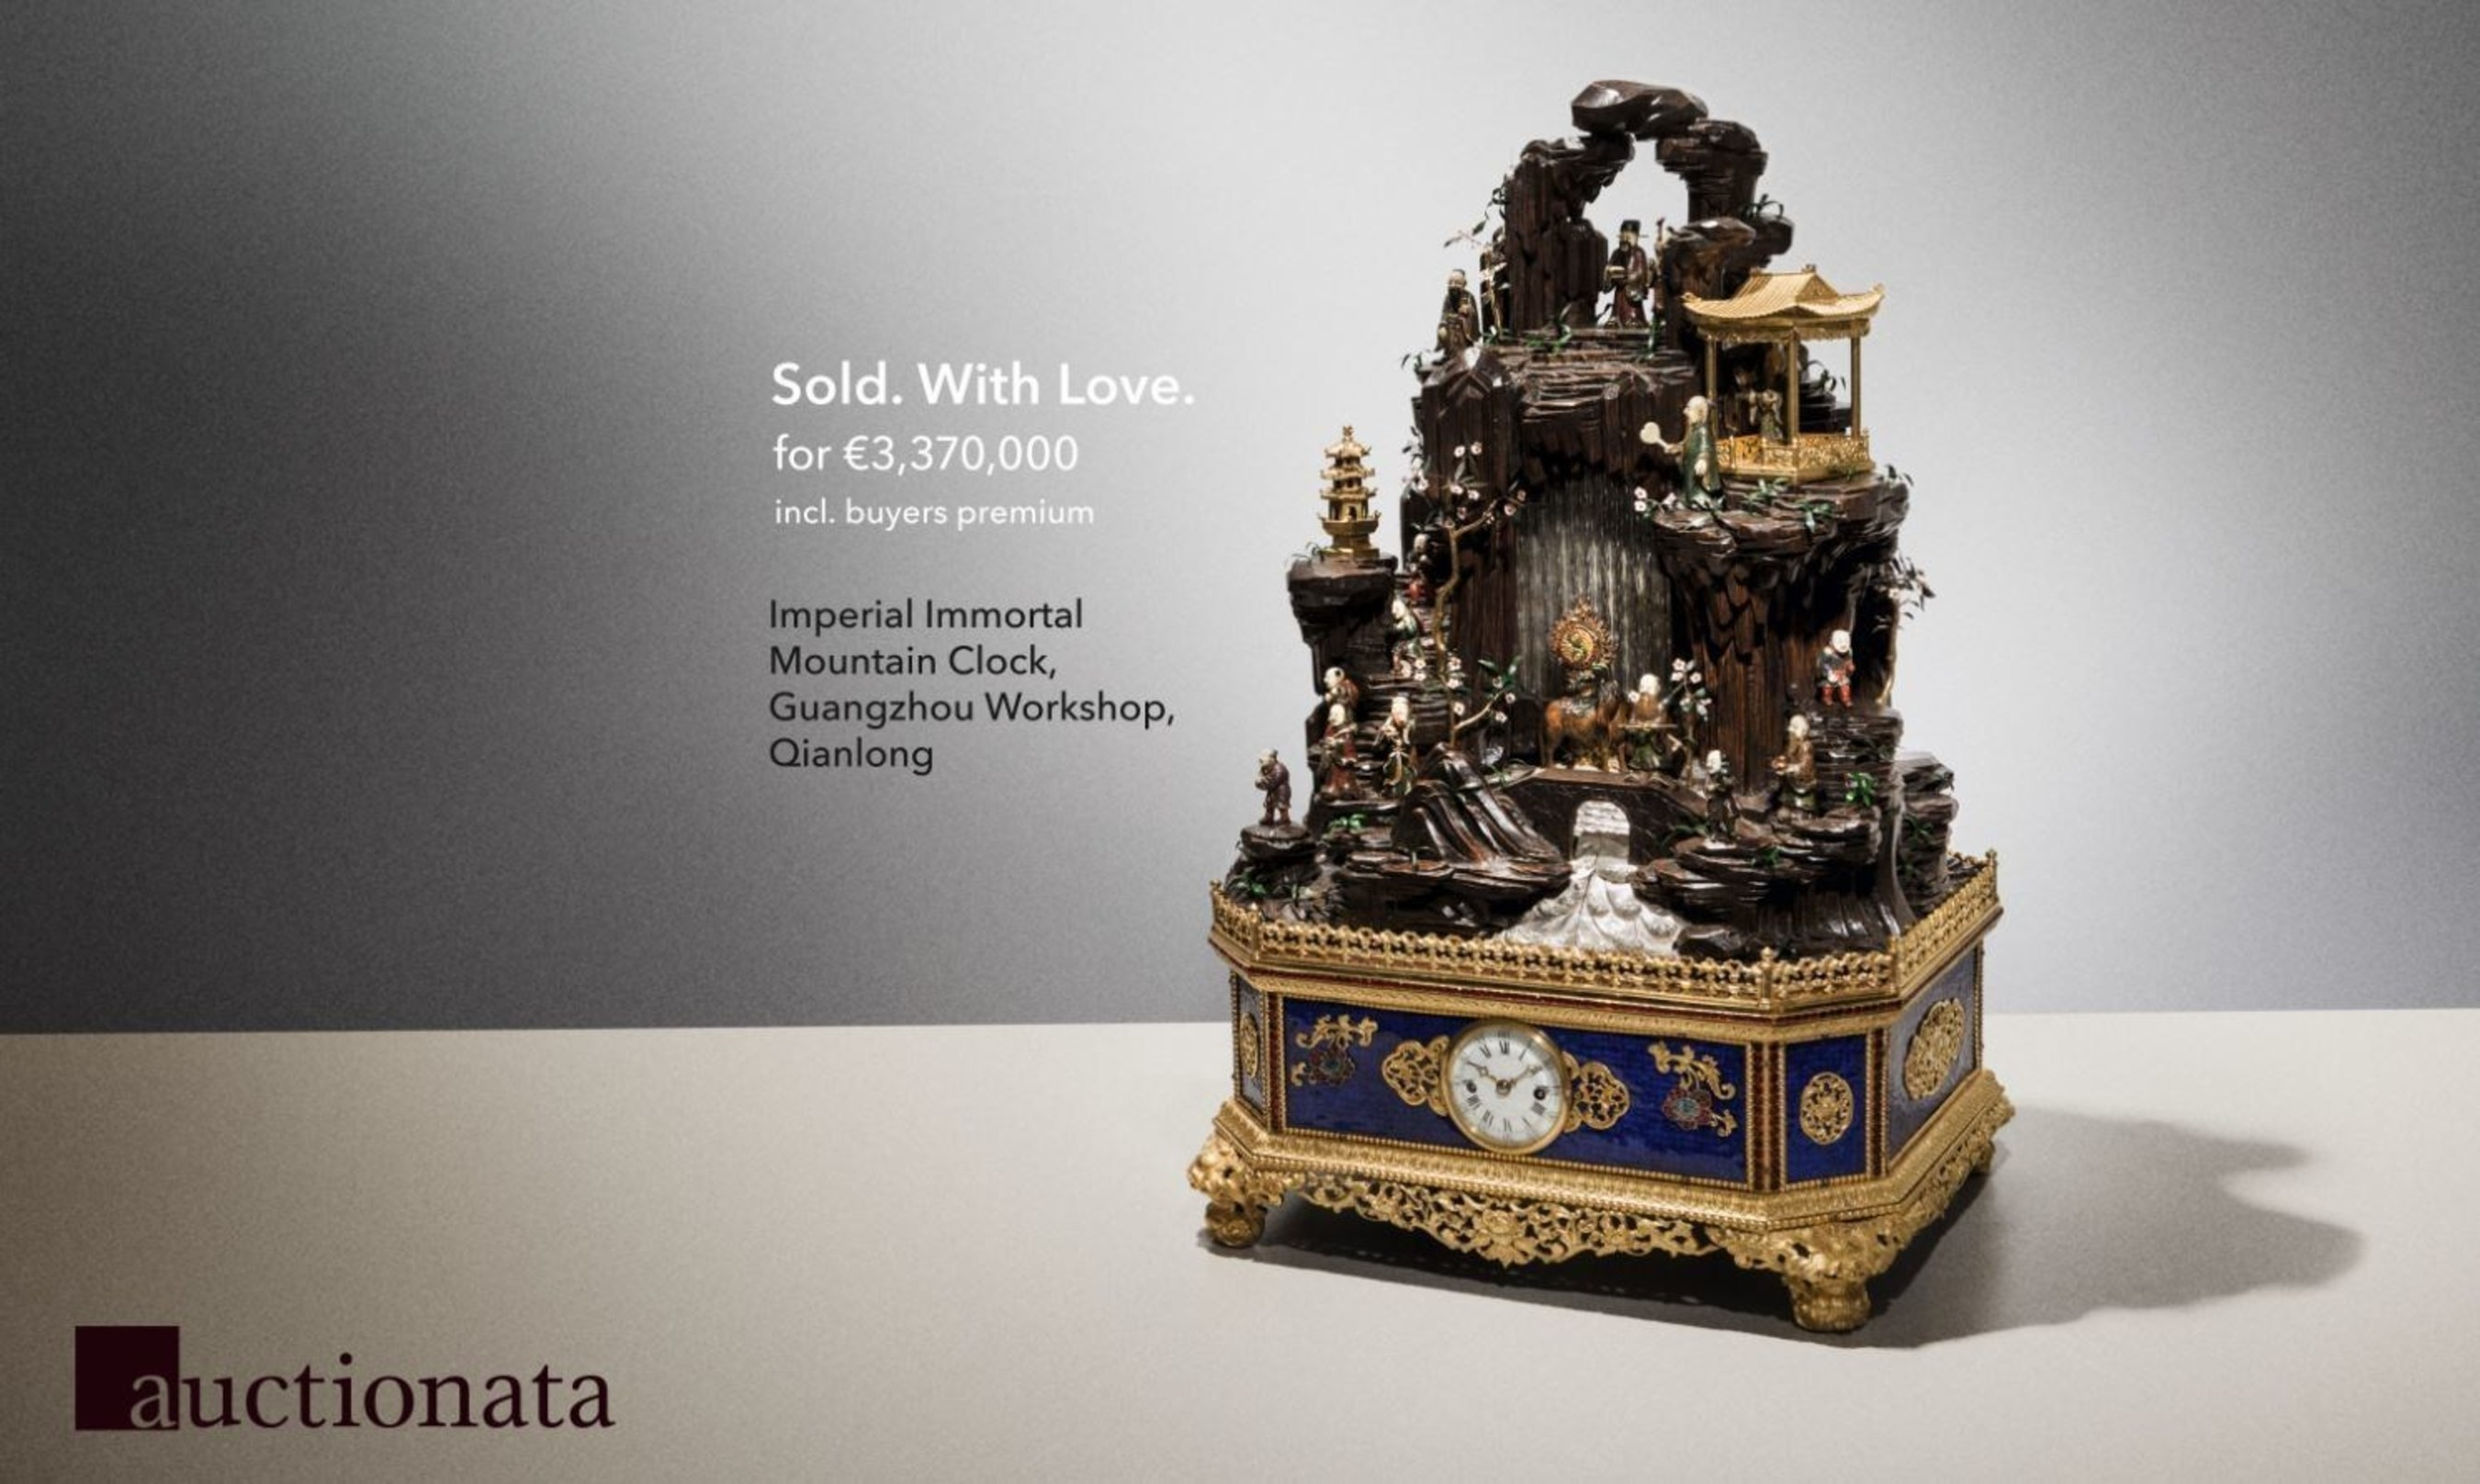 Auction Record: Chinese Clock sells for 3.37 million EUR (3.83 million USD)